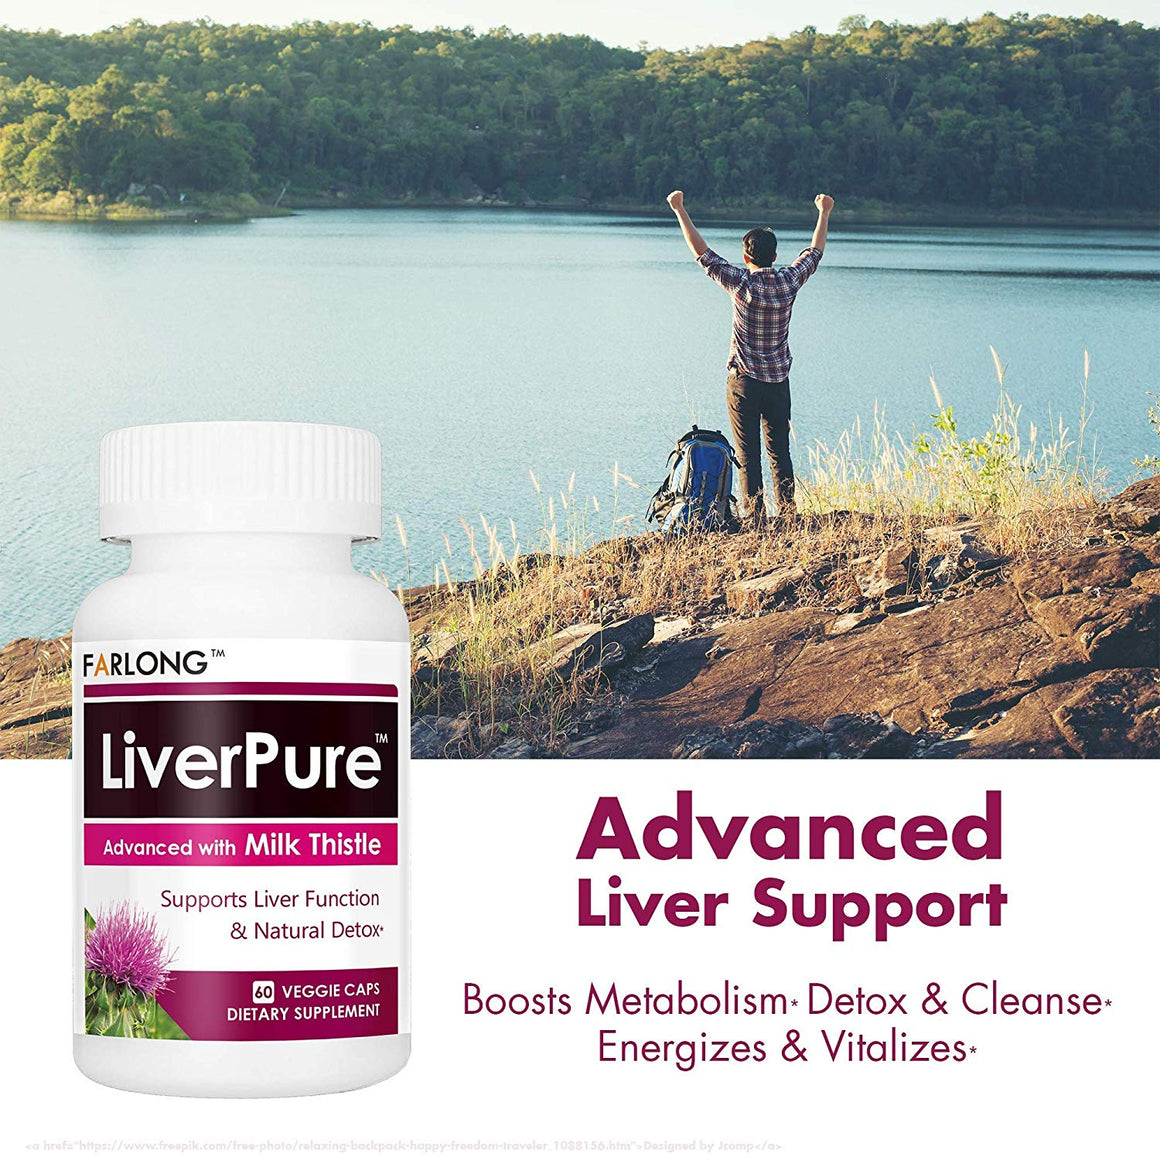 LiverPure™ Advanced with Milk Thistle